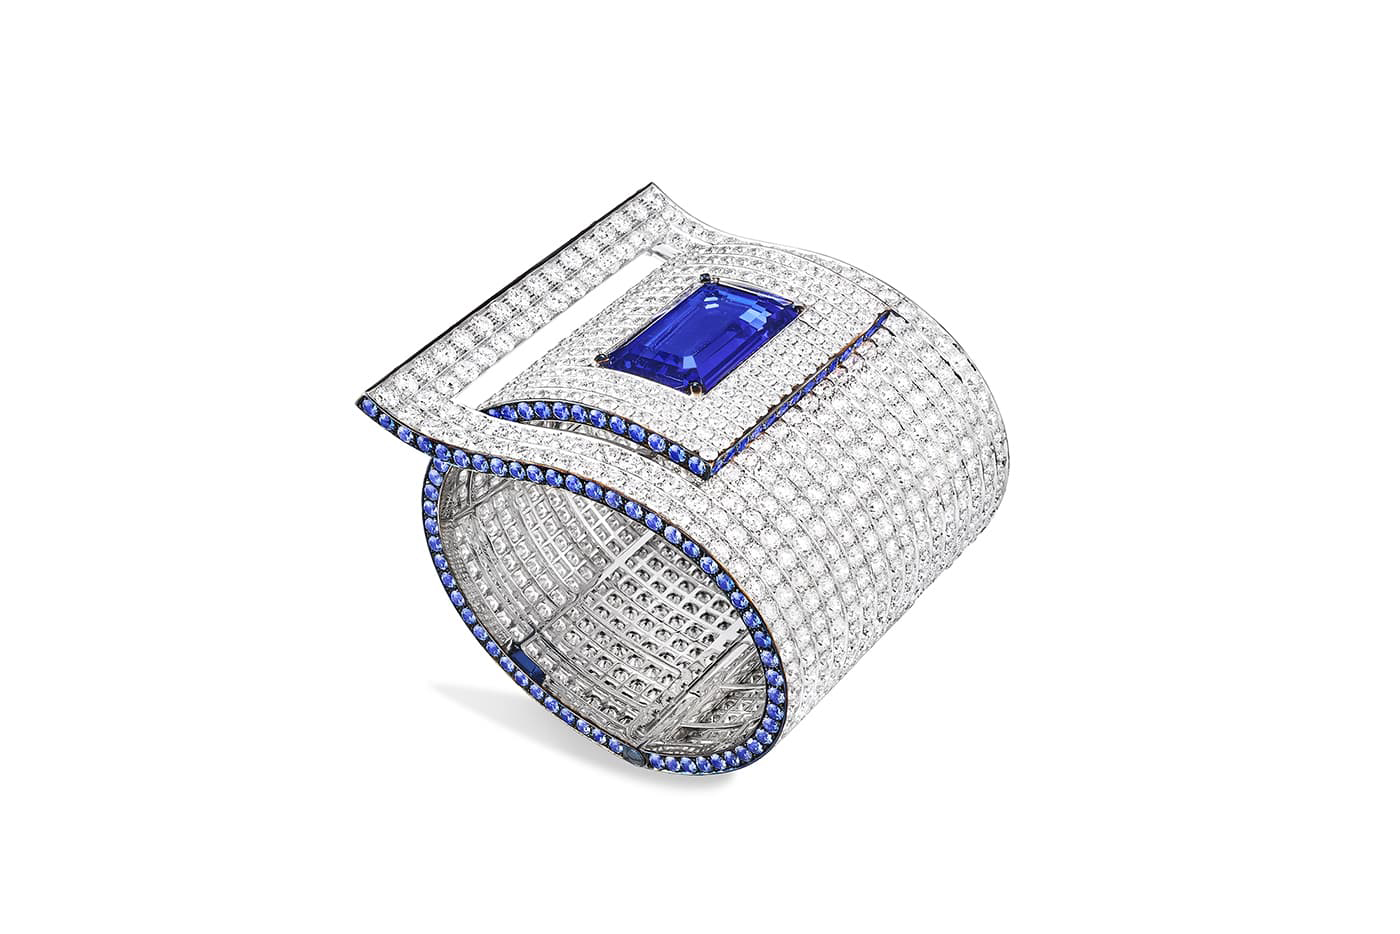 Fabio Salini cuff with 22.20ct tanzanite, sapphires and diamonds in gold